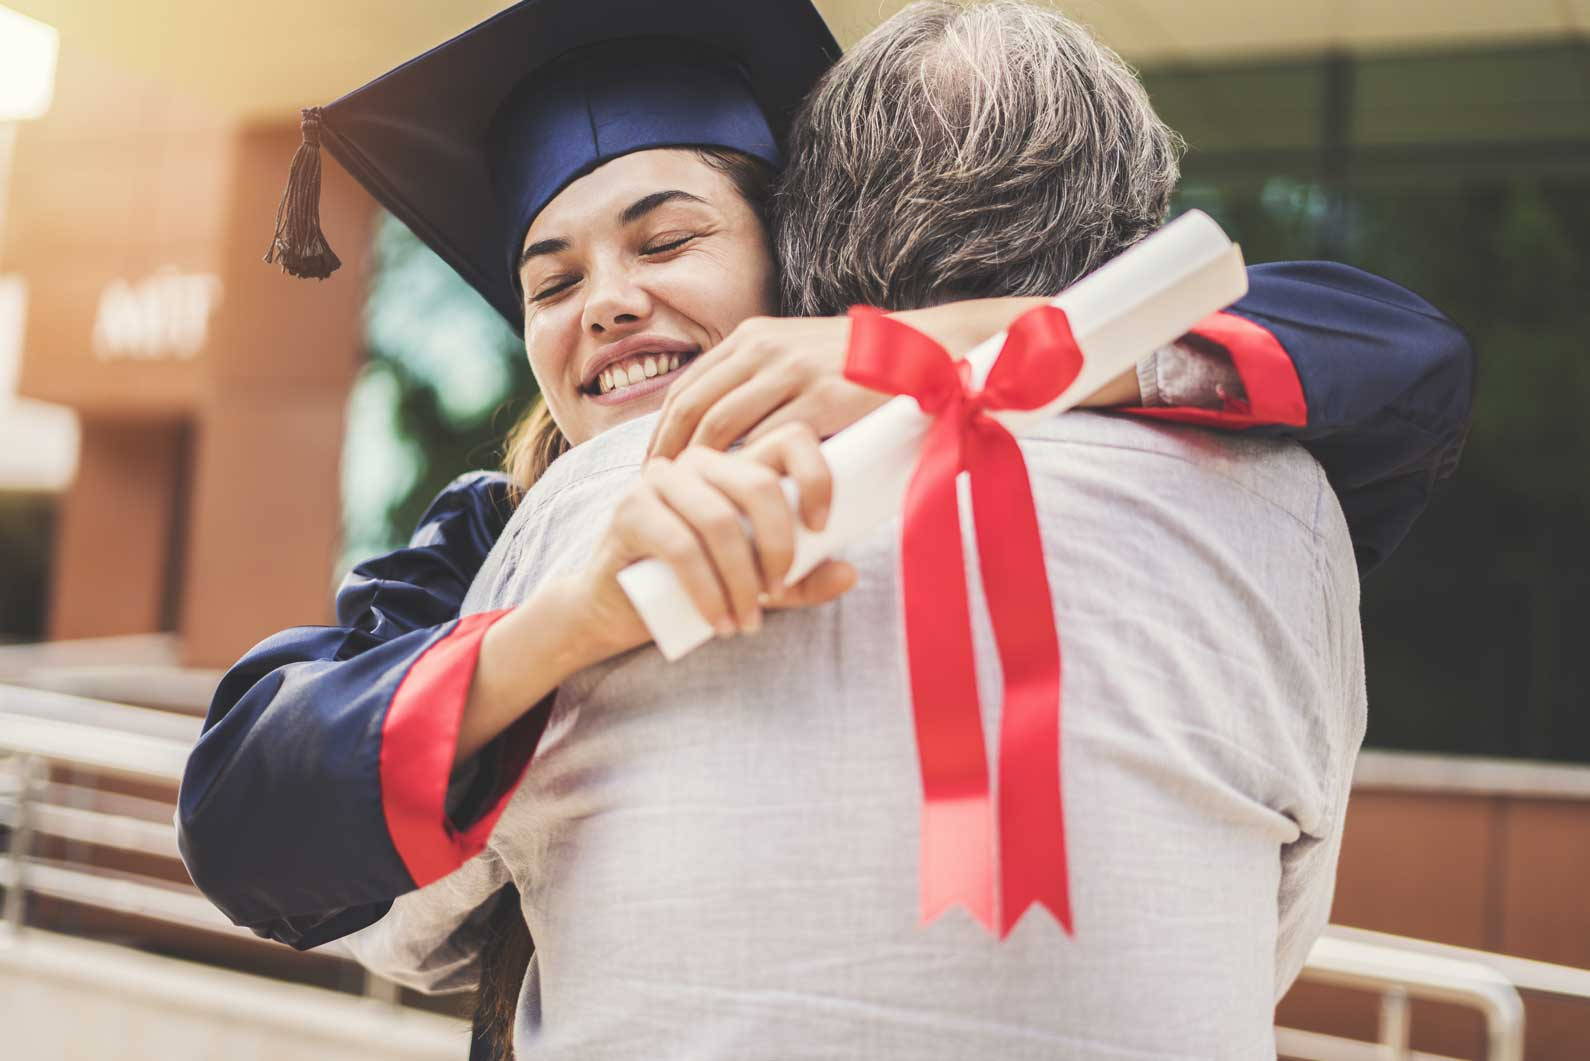 High school graduate hugging parent while holding diploma